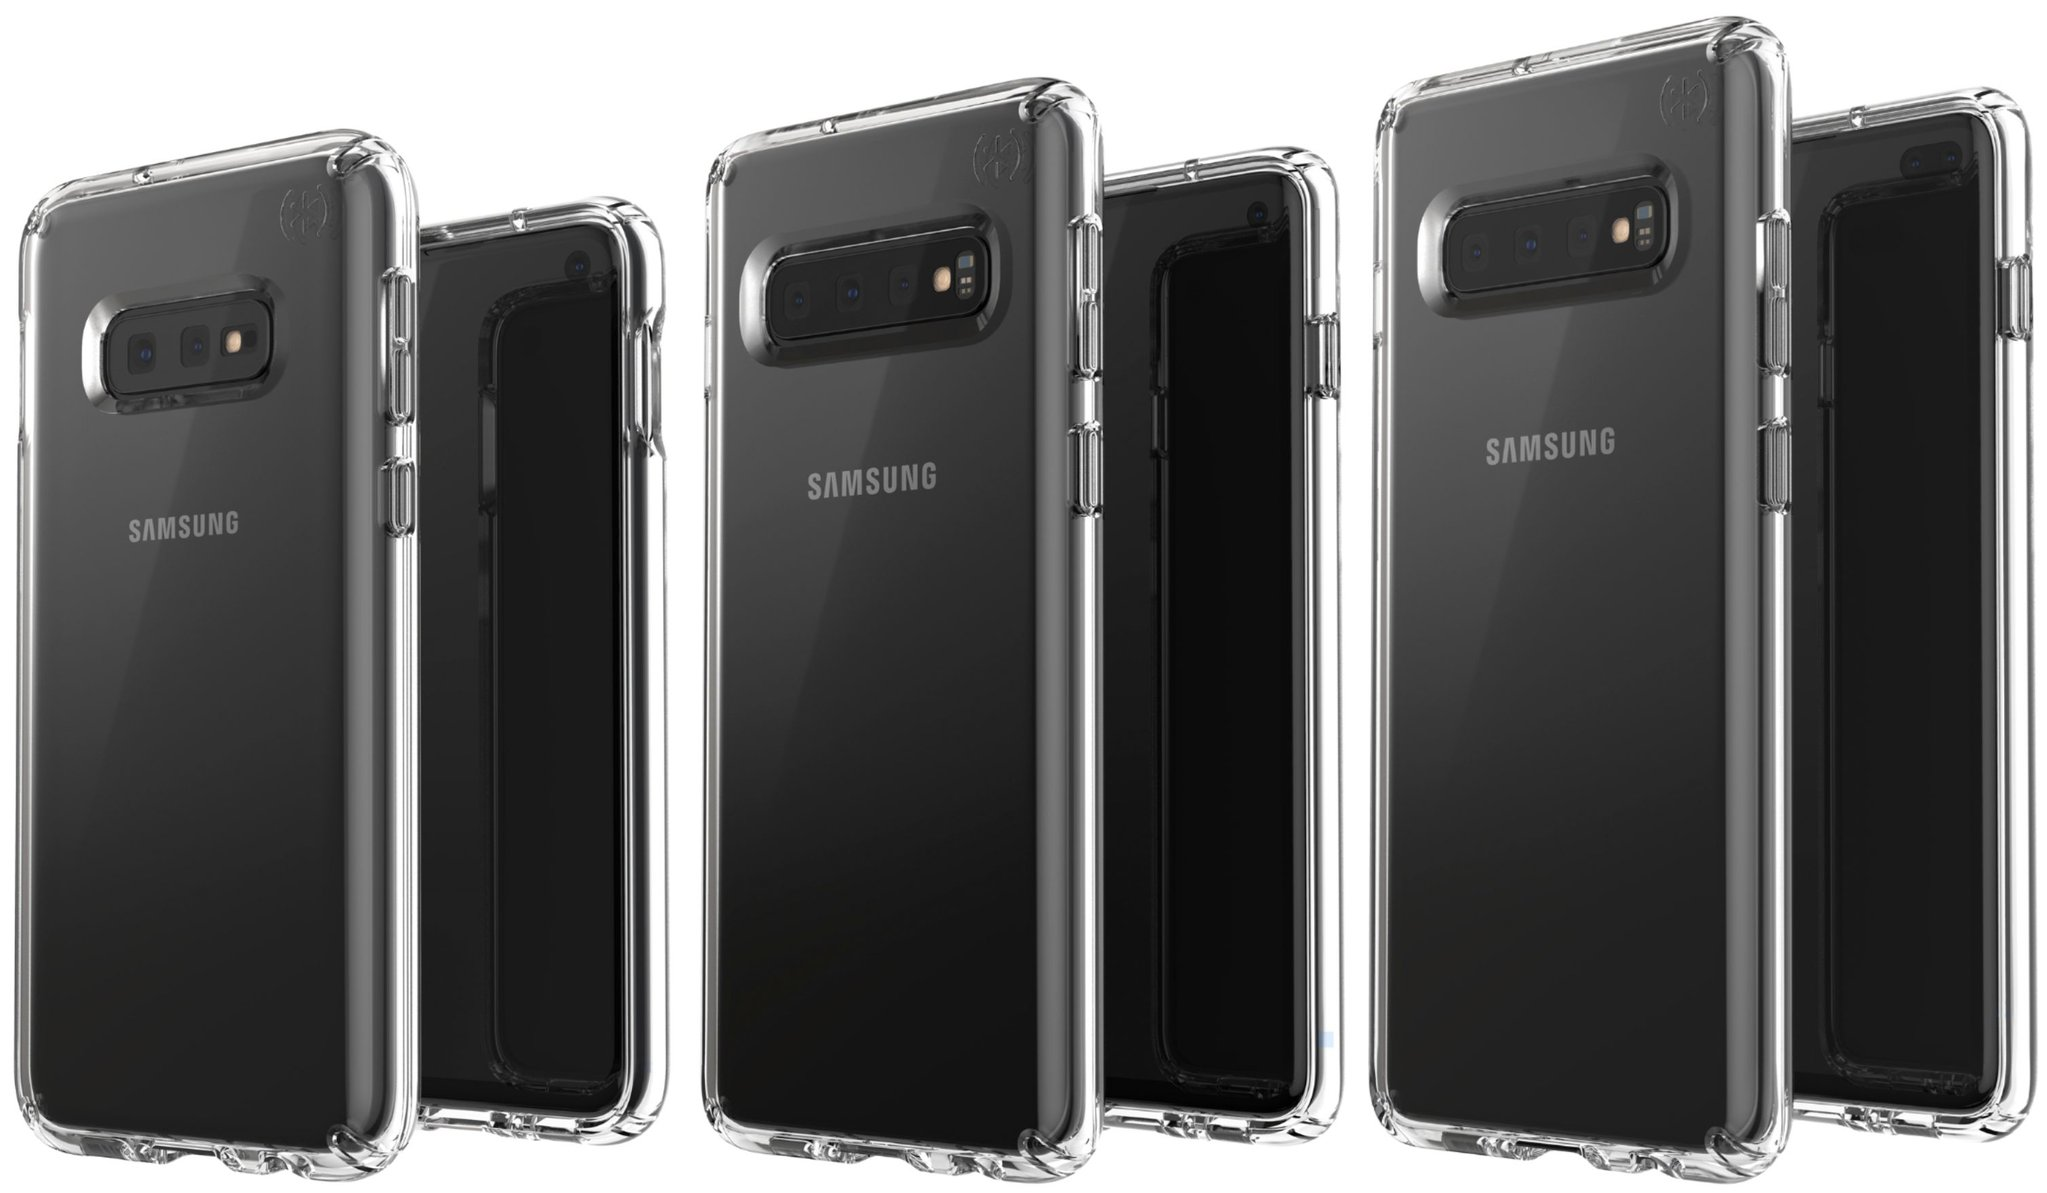 Samsung Galaxy A60 aka Galaxy A8s Lite to reportedly launch in April